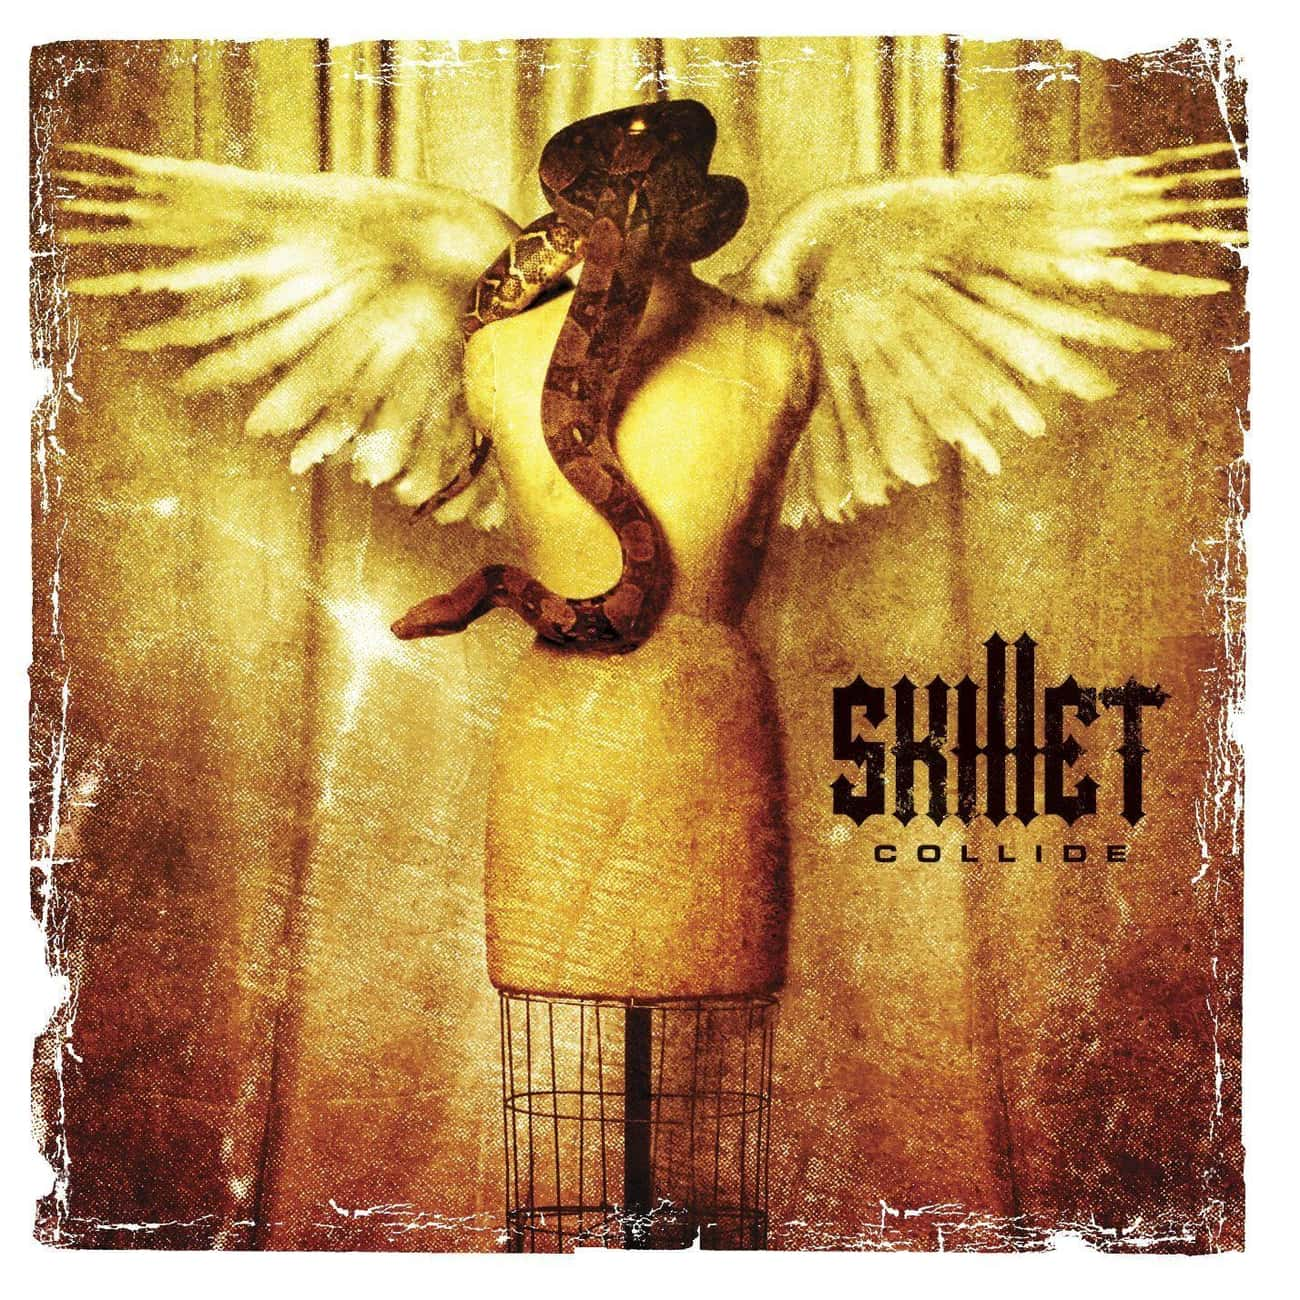 Collide is listed (or ranked) 4 on the list The Best Skillet Albums of All Time